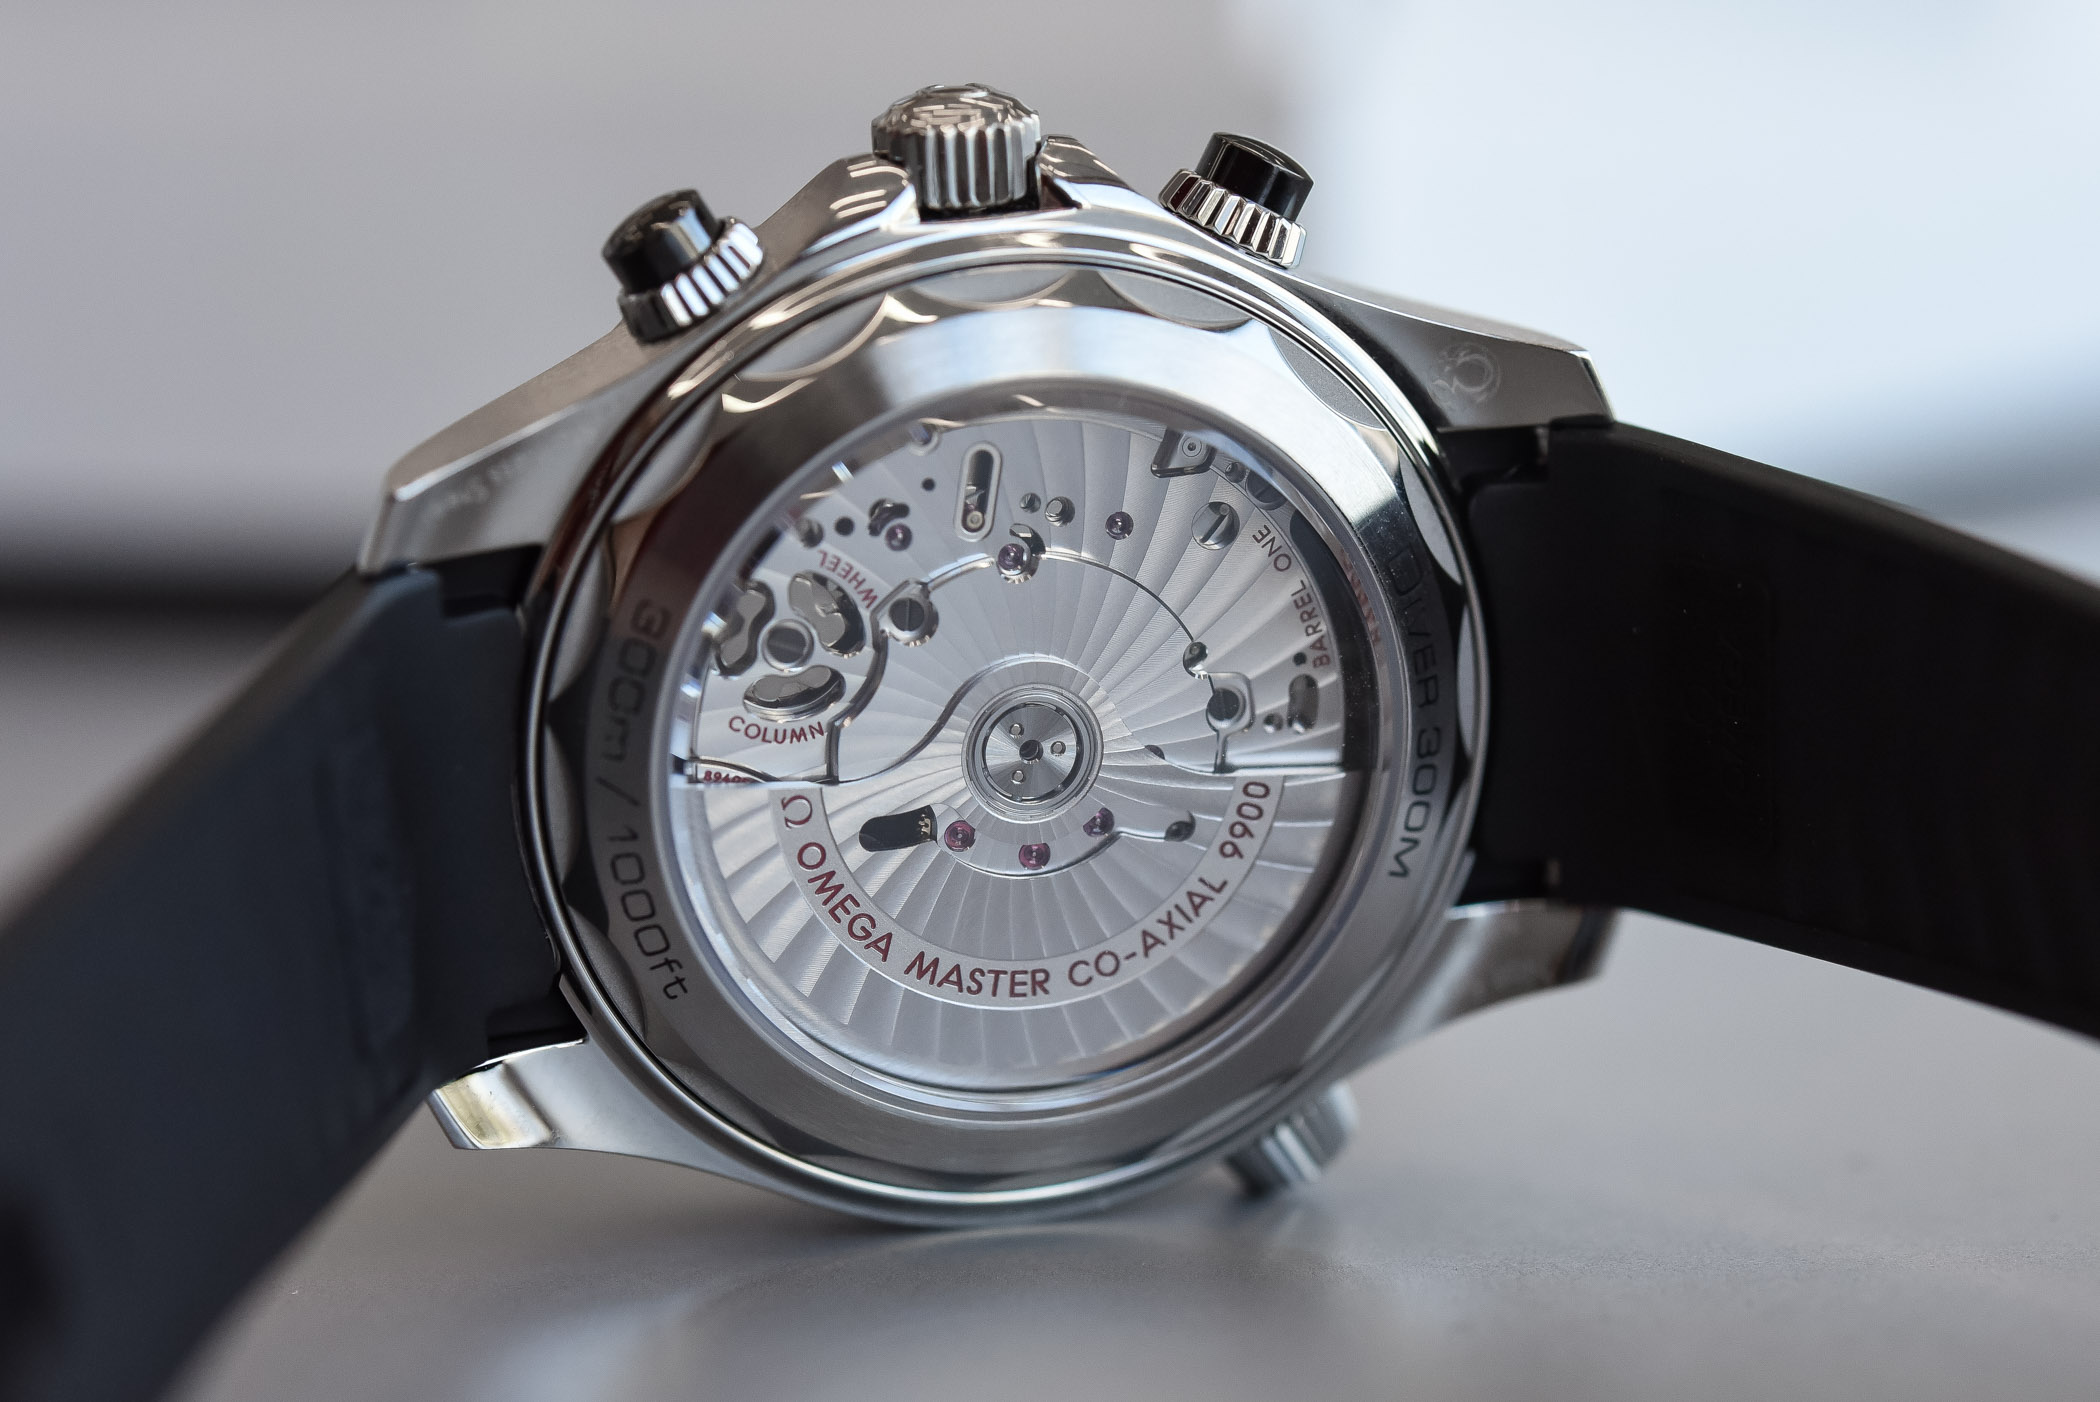 Omega Seamaster Diver 300M Chronograph (Hands-On